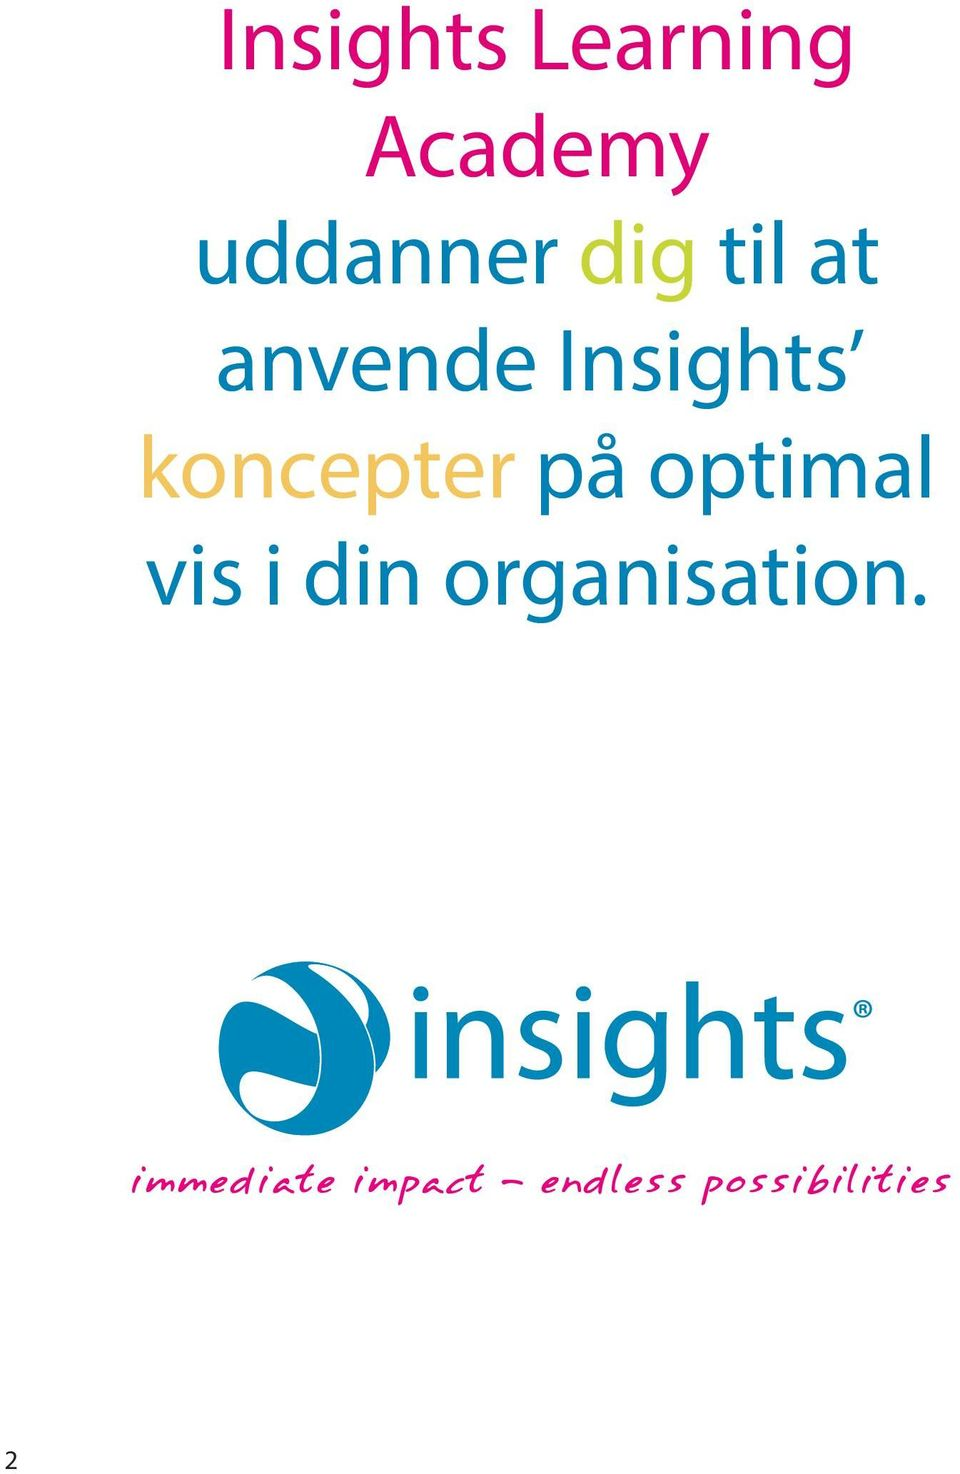 Insights koncepter på